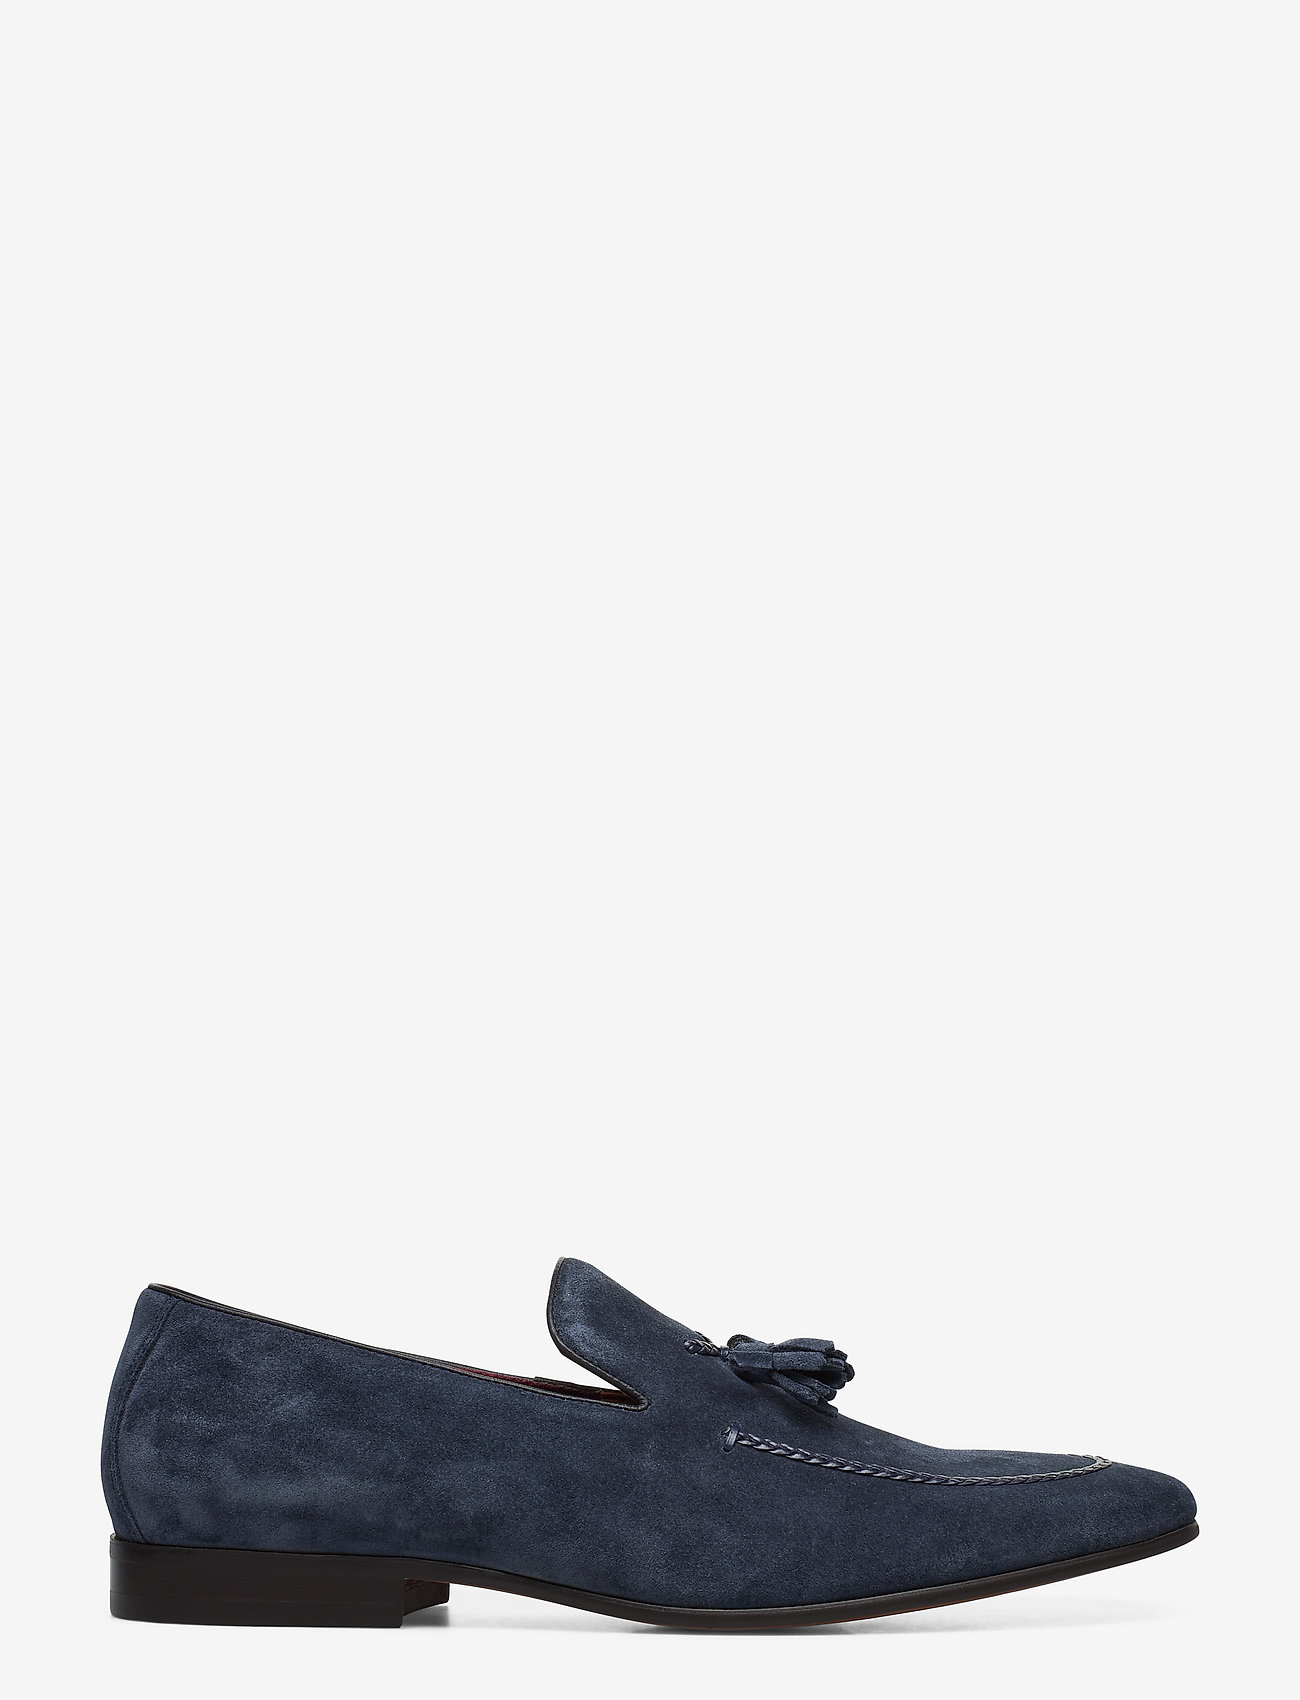 Dune London - Spirited - loafers - navy - suede - 1